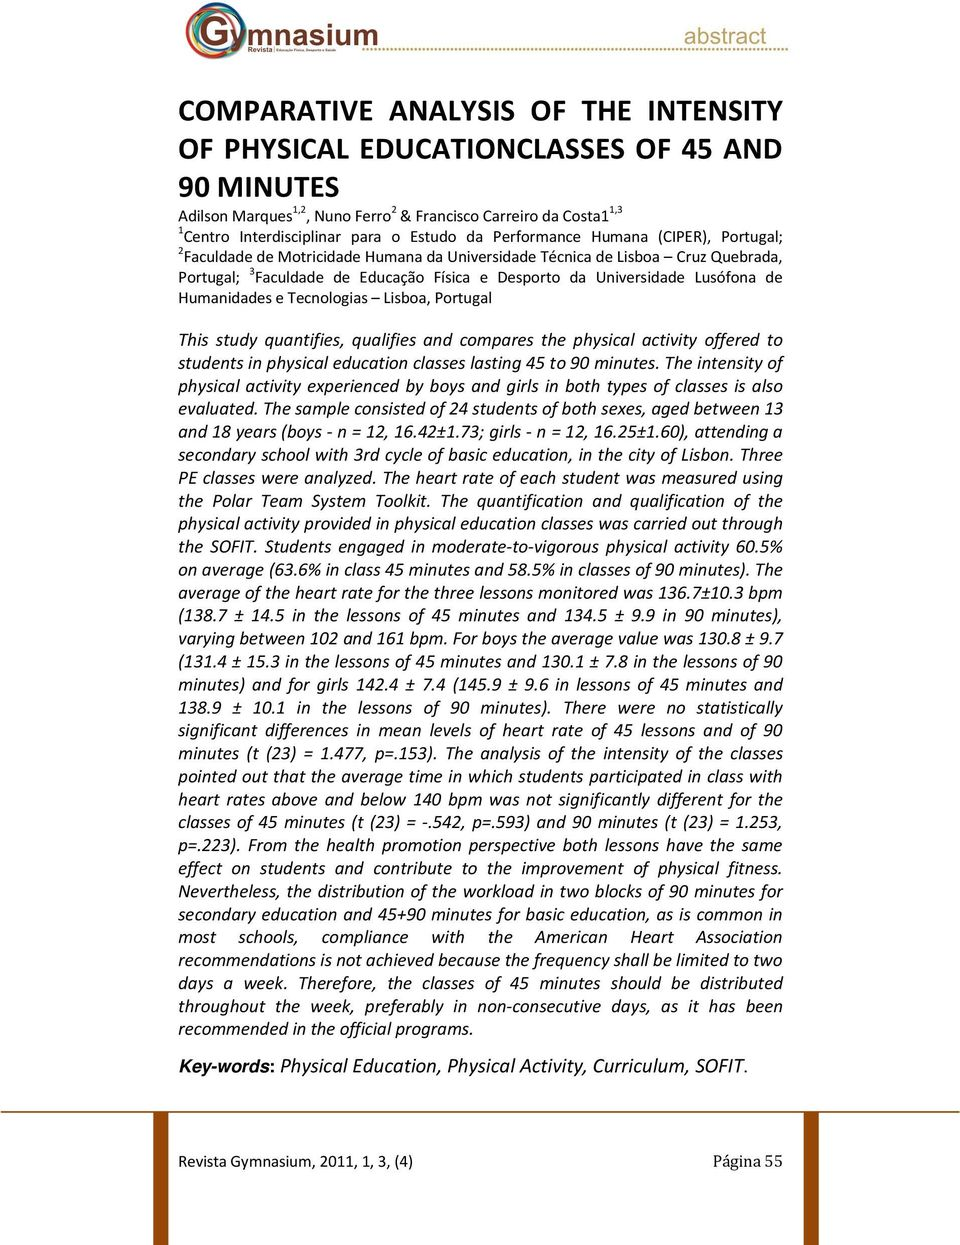 de Humanidades e Tecnologias Lisboa, Portugal This study quantifies, qualifies and compares the physical activity offered to students in physical education classes lasting 45 to 90 minutes.